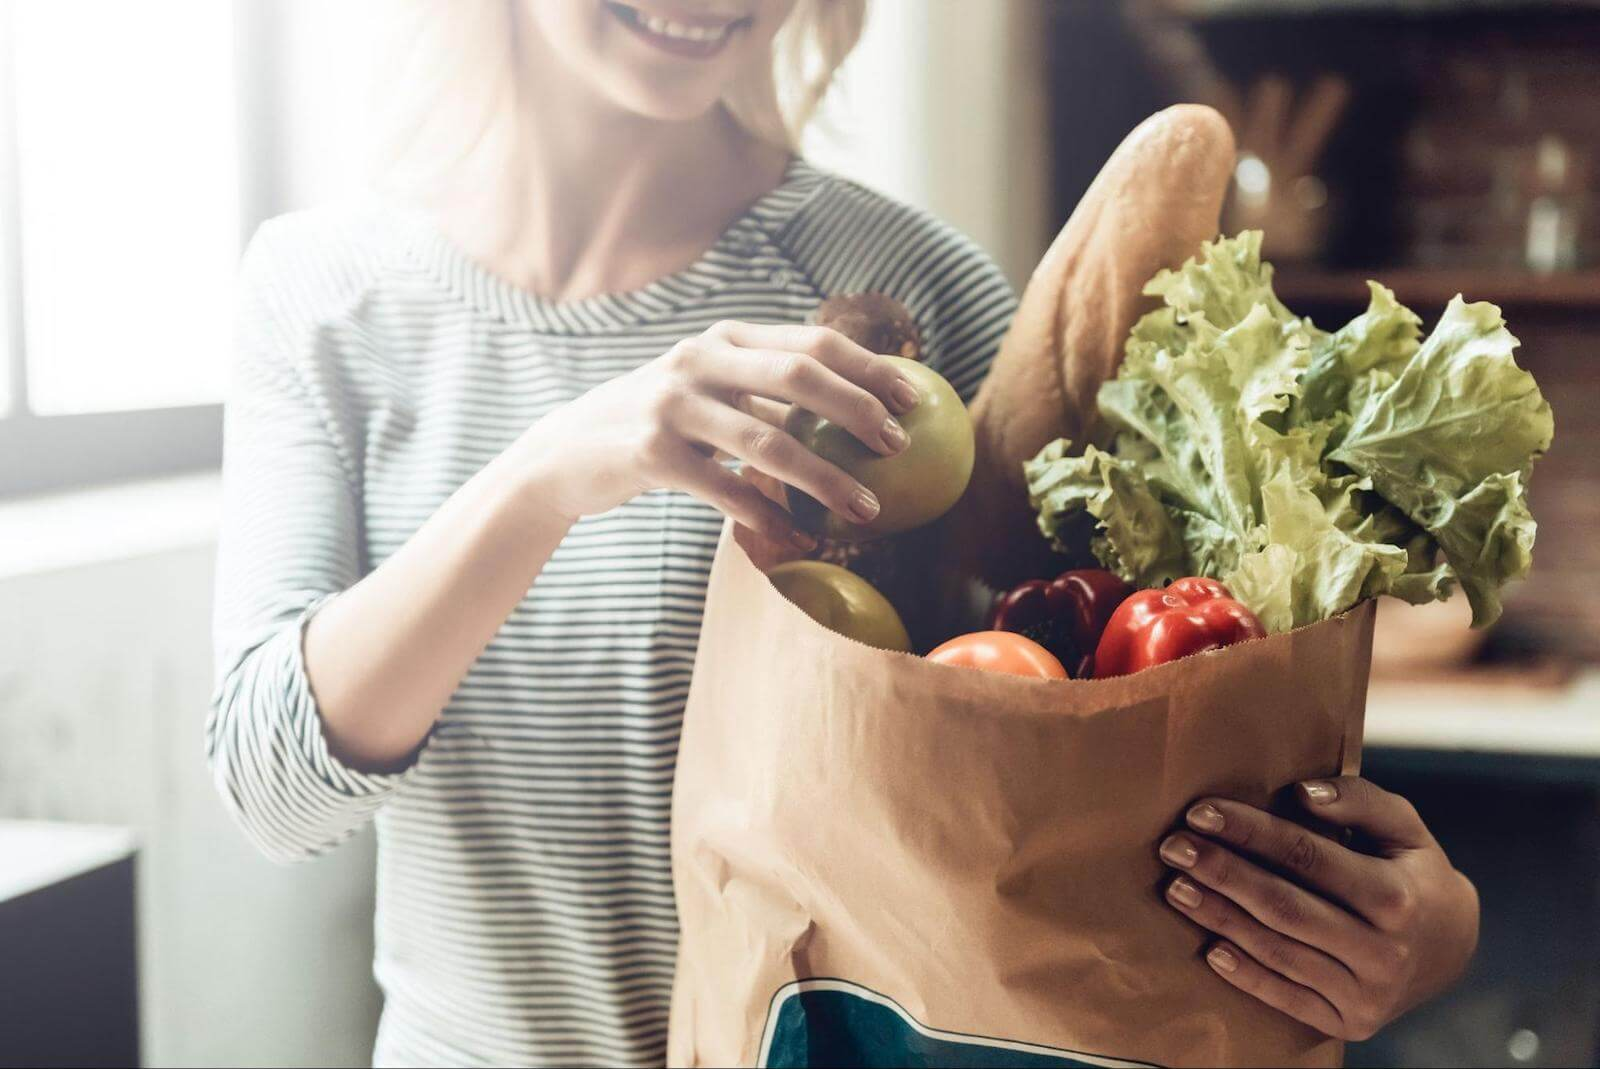 Circadian rhythm fasting: woman carrying groceries